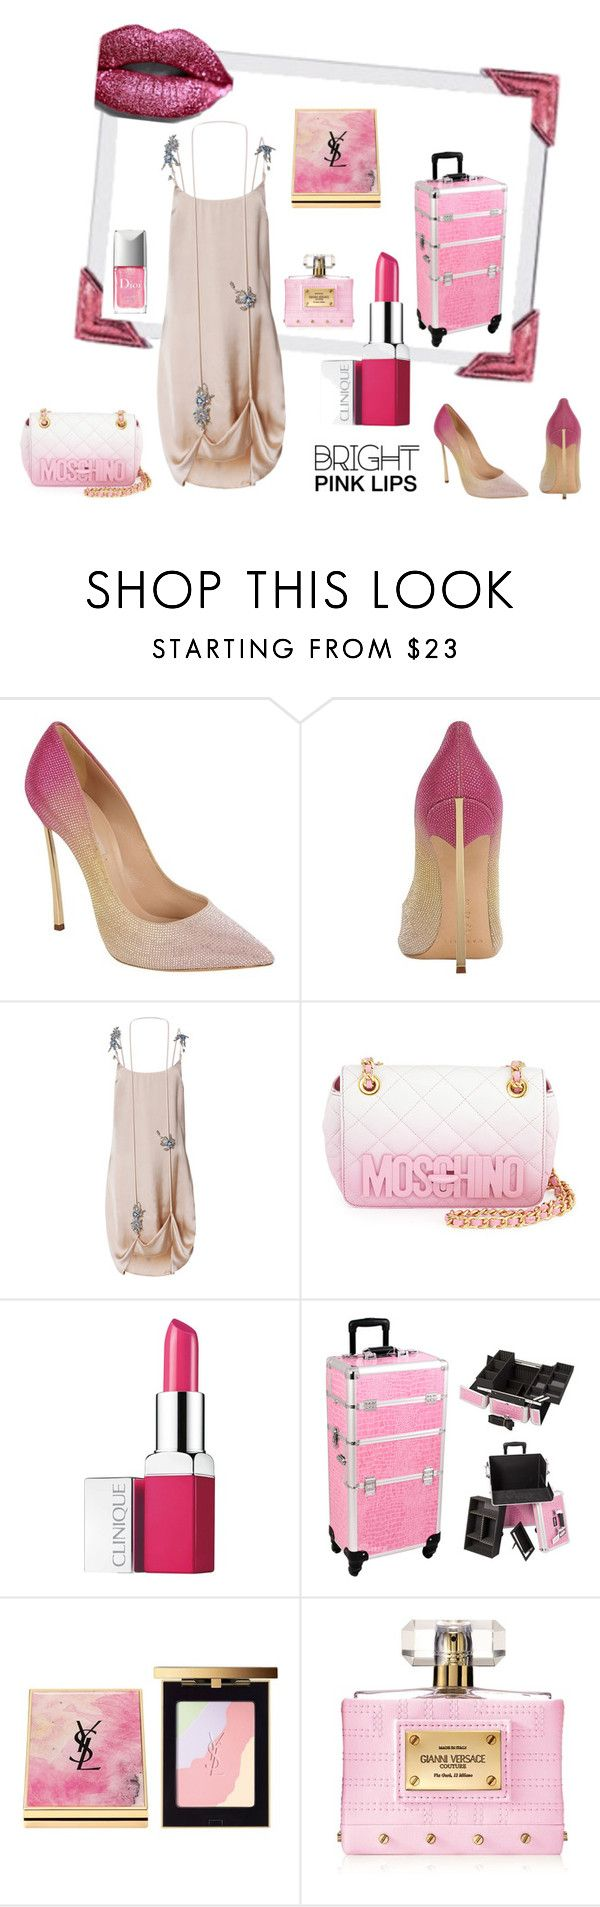 """""""...................."""" by ludmila-petrova ❤ liked on Polyvore featuring beauty, Casadei, Christopher Kane, Moschino, Clinique, Yves Saint Laurent and Versace"""